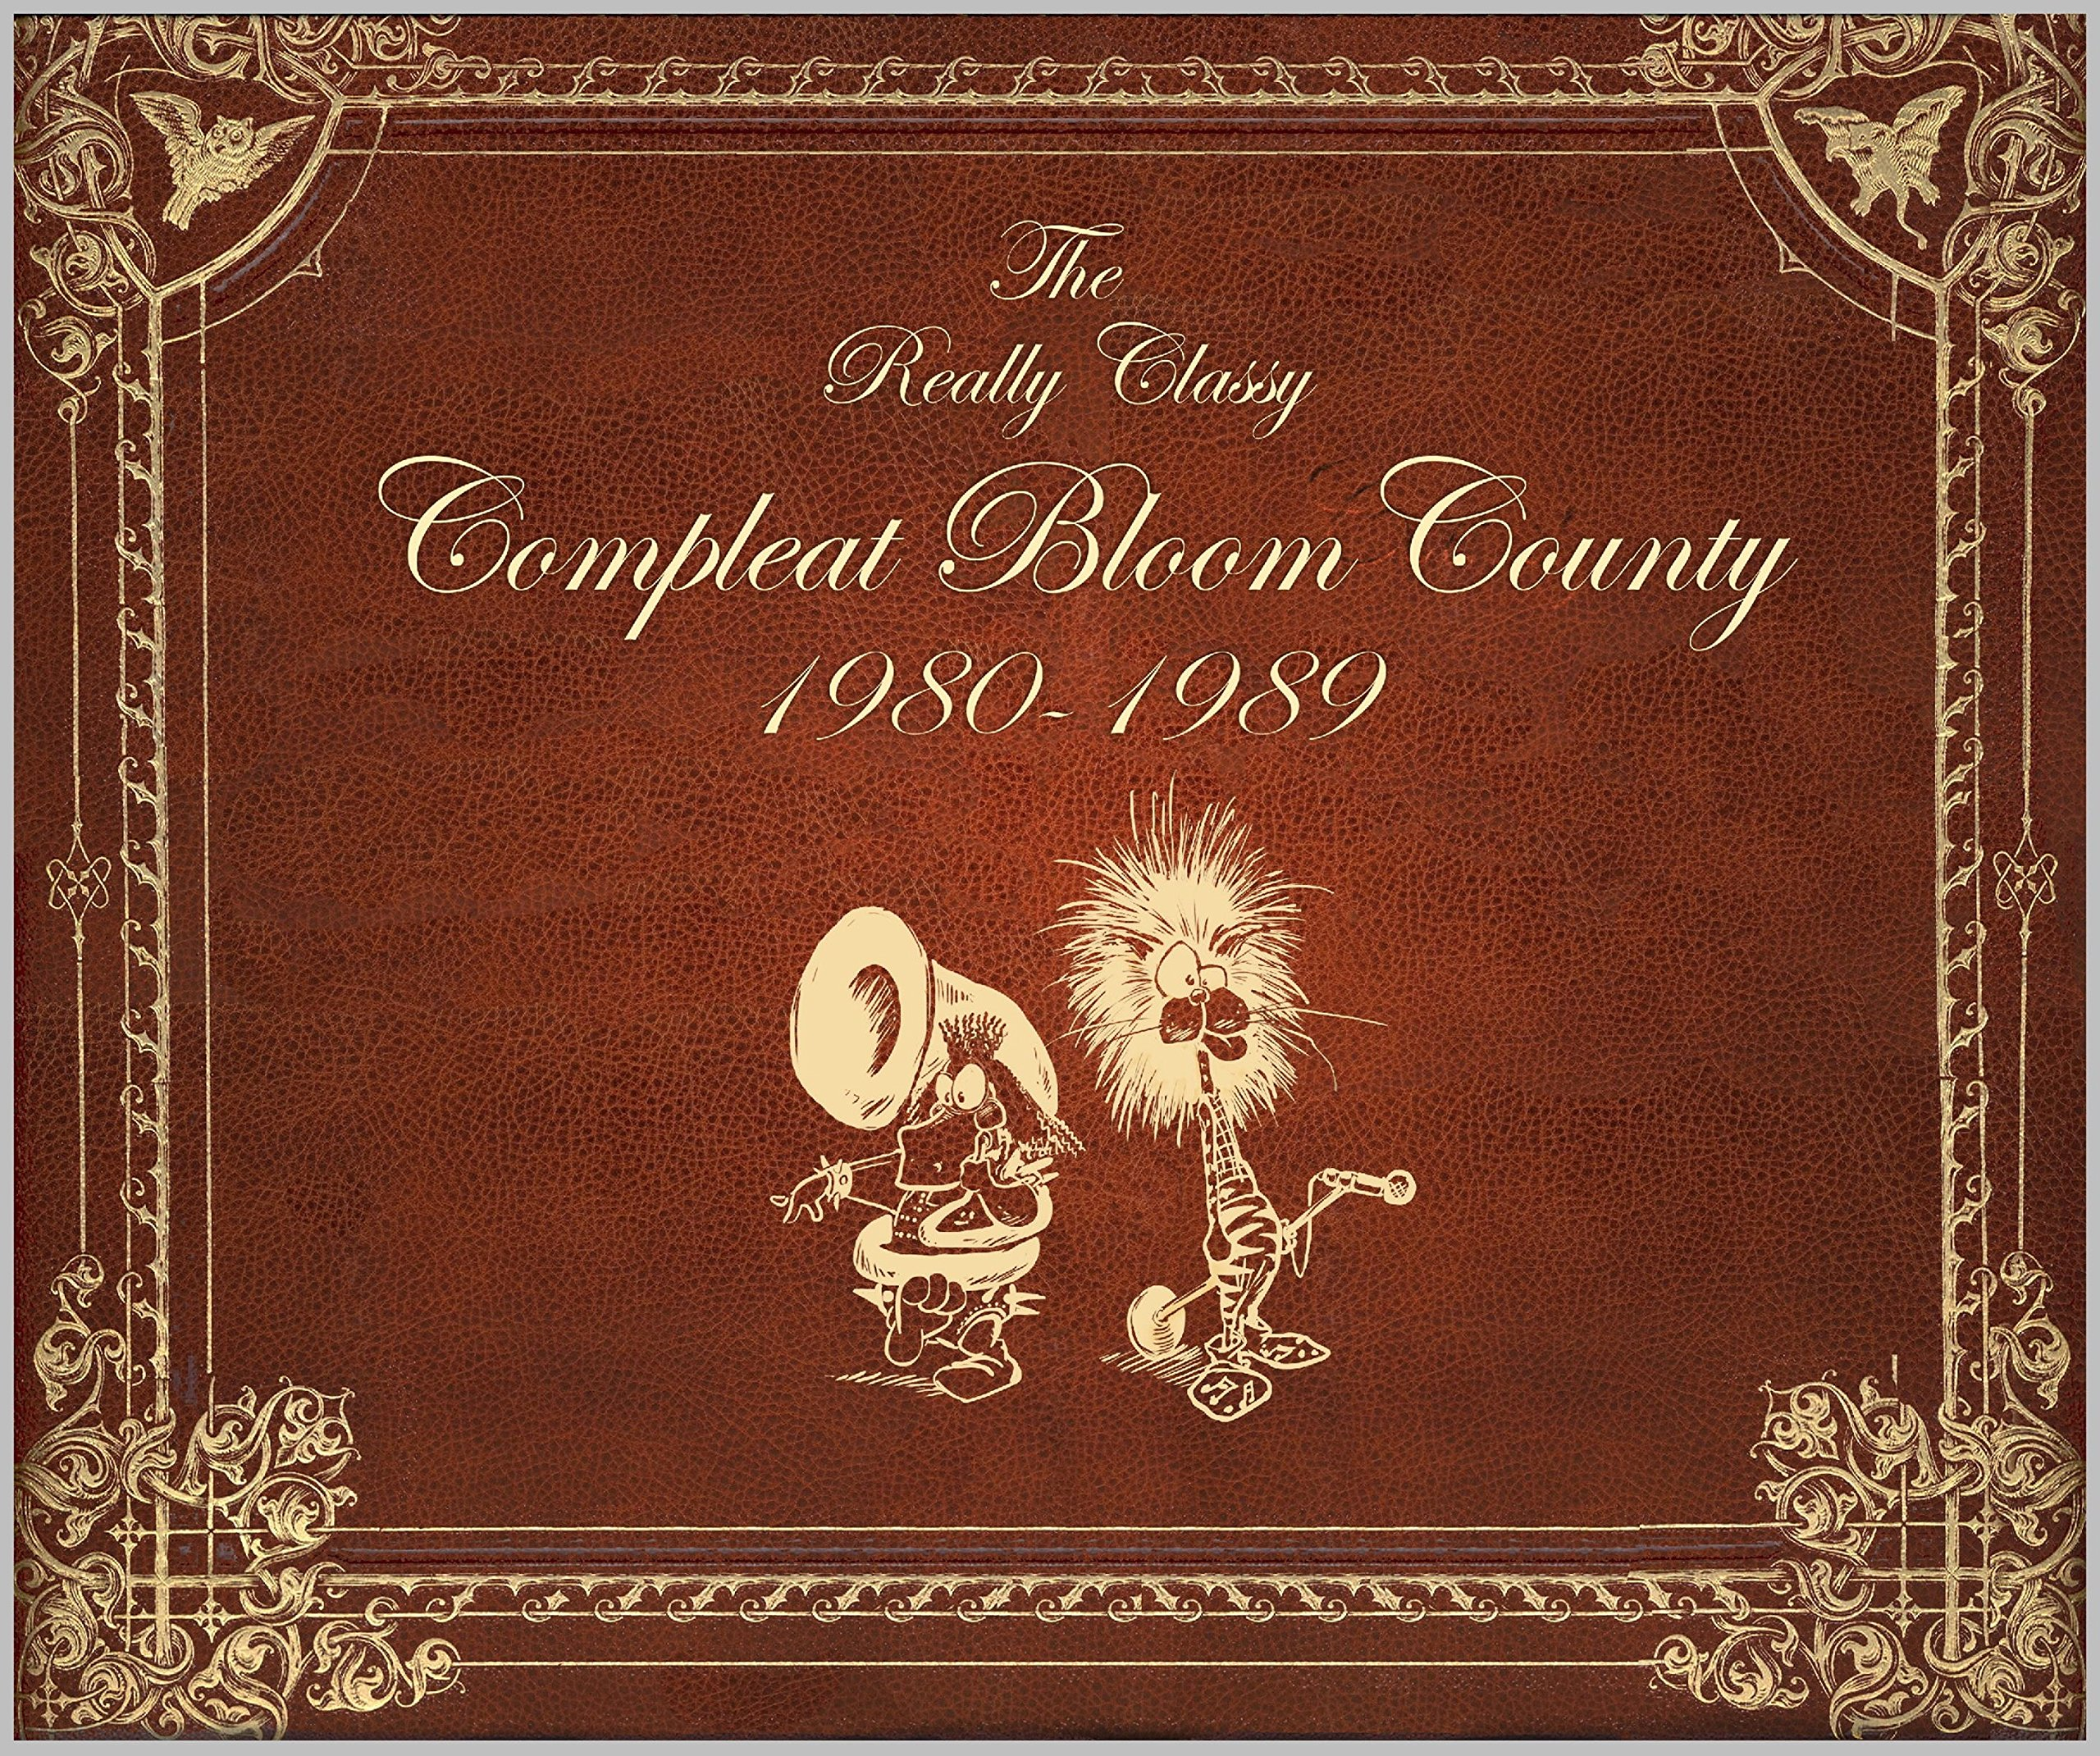 Bloom County: Real, Classy, Compleat: 1980-1989